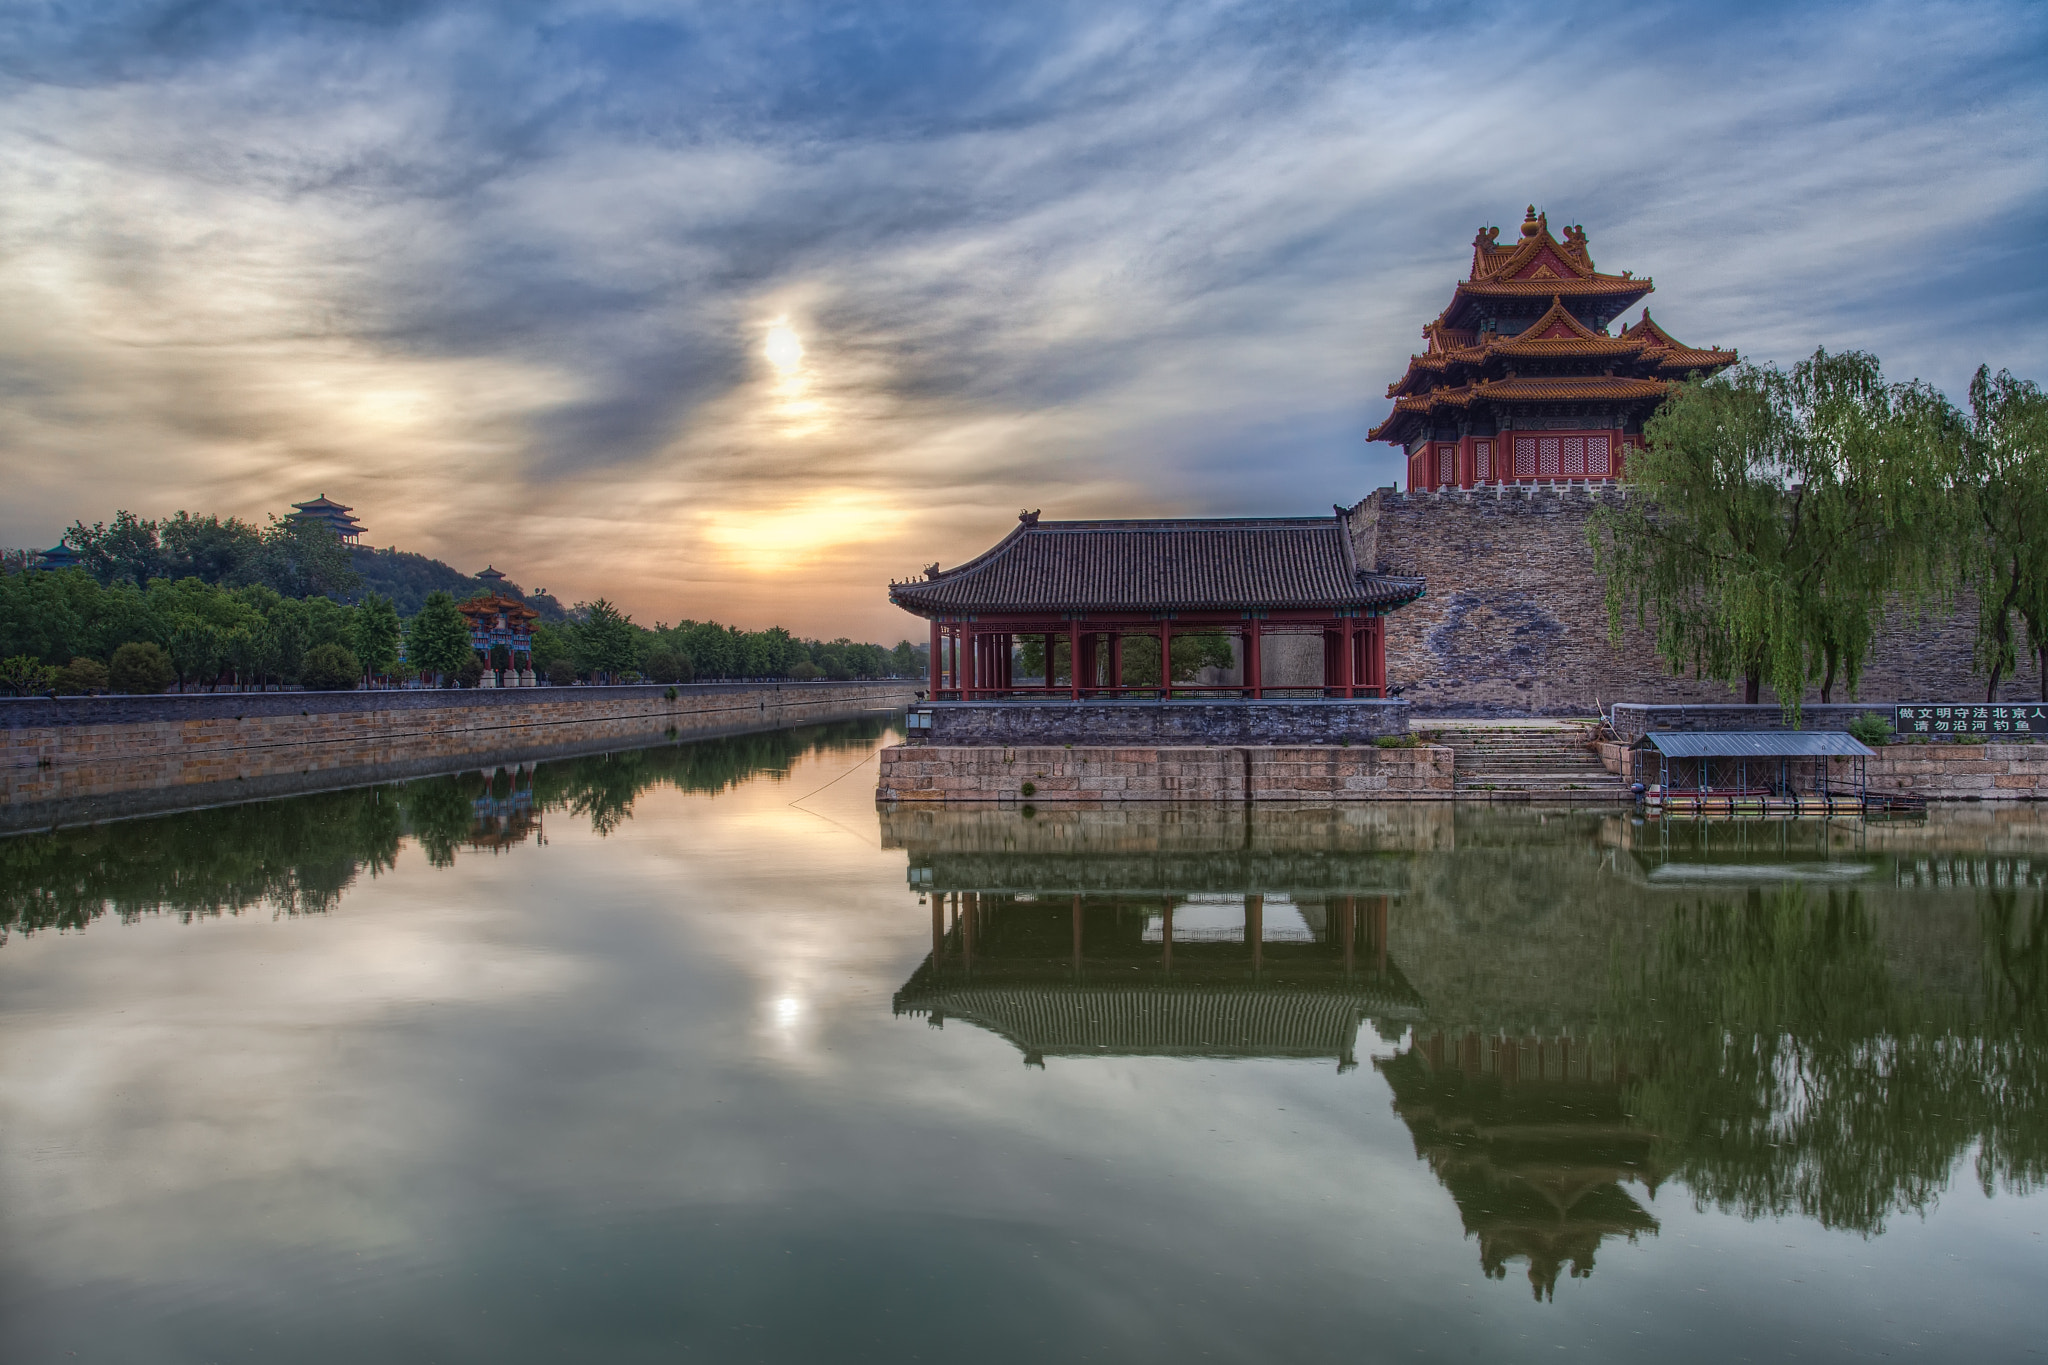 Photograph Sunrise over the Forbidden City by greg_a on 500px